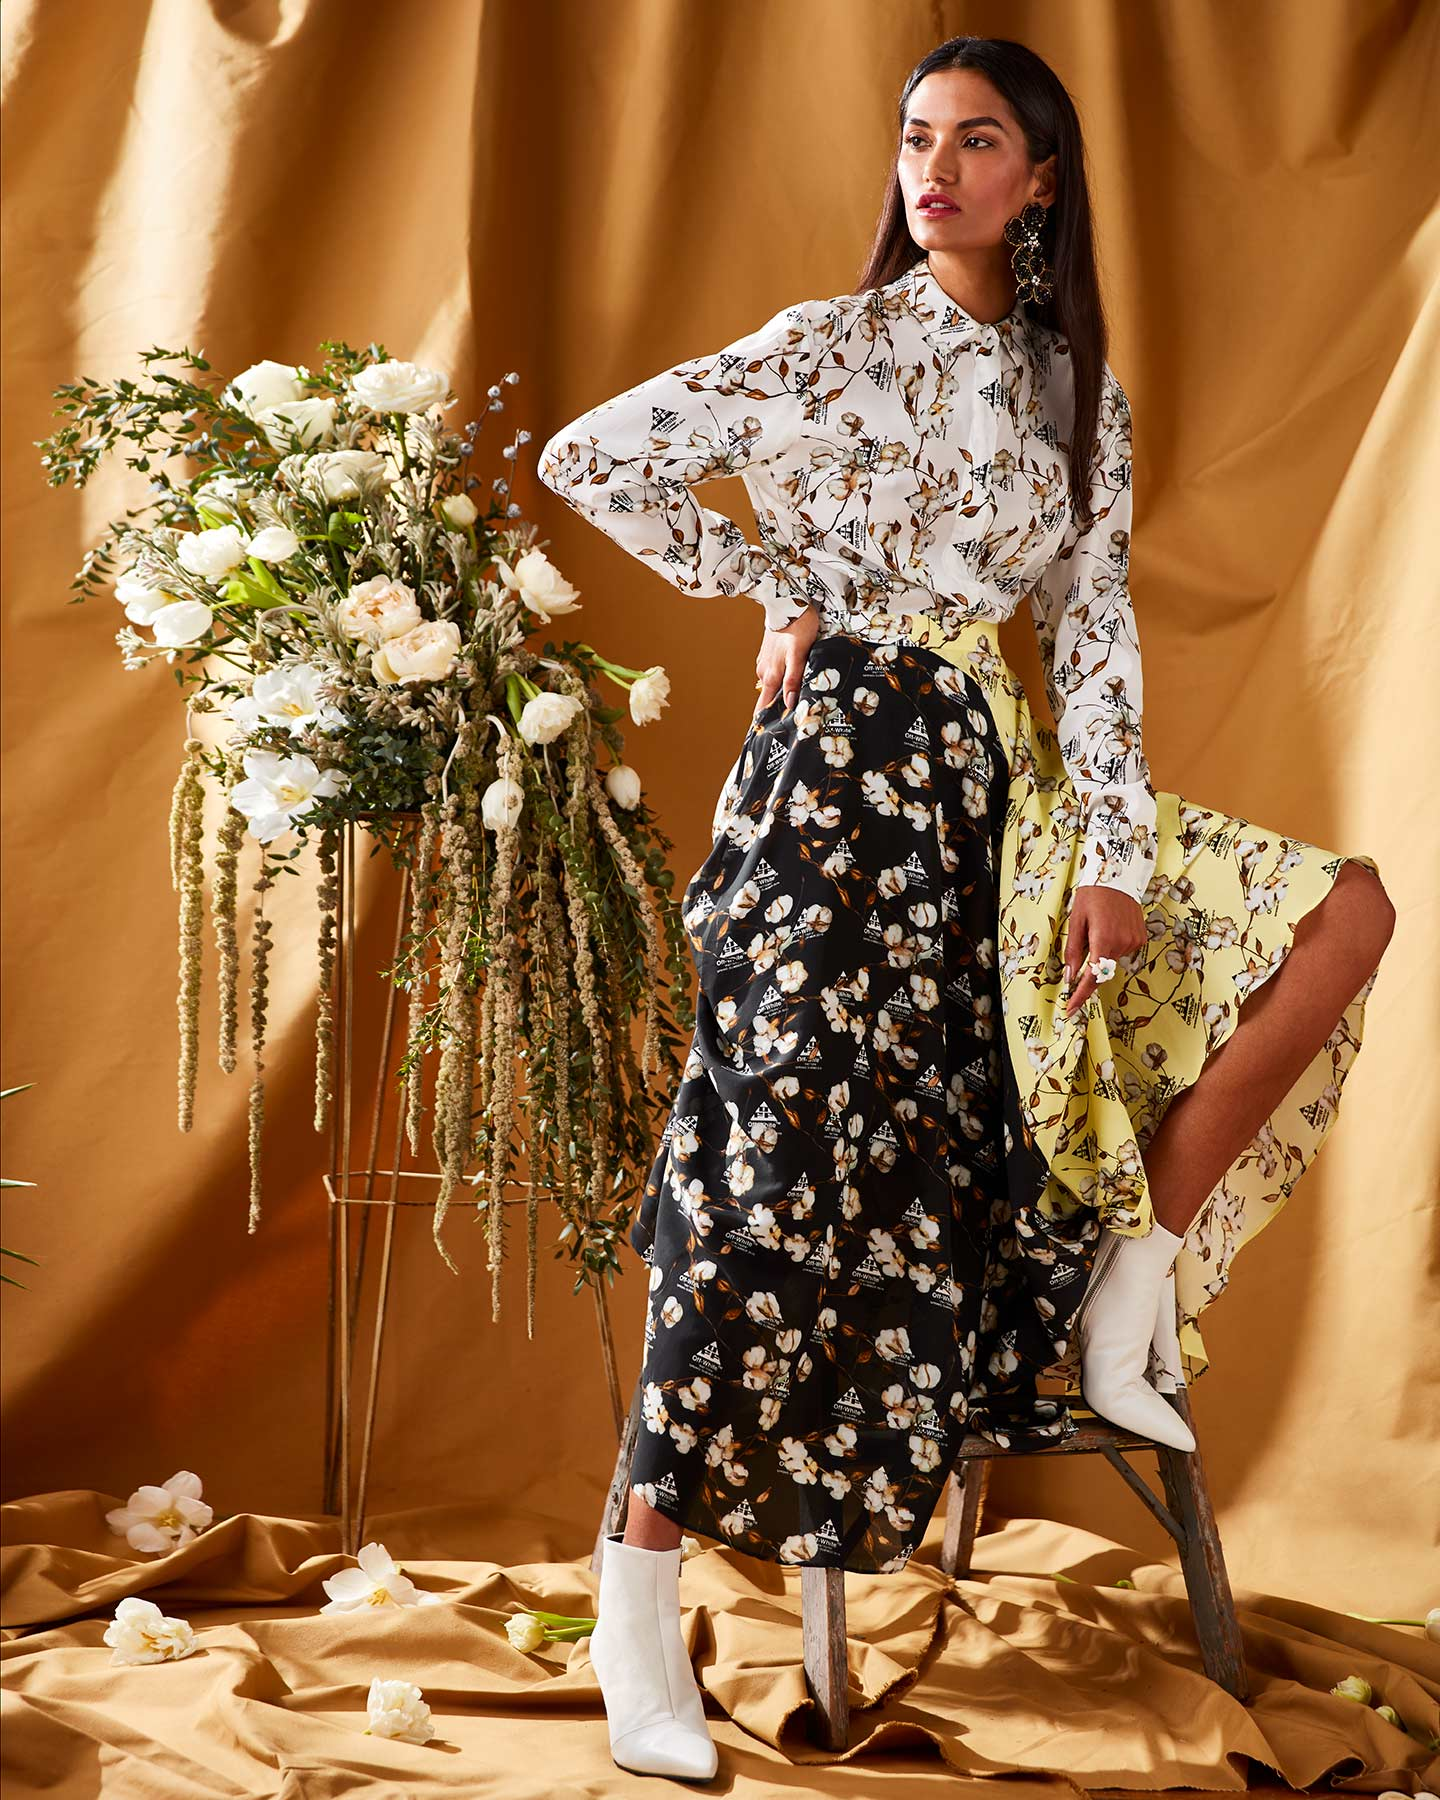 Fashion photography featuring a model and large floral arrangement against a yellow background